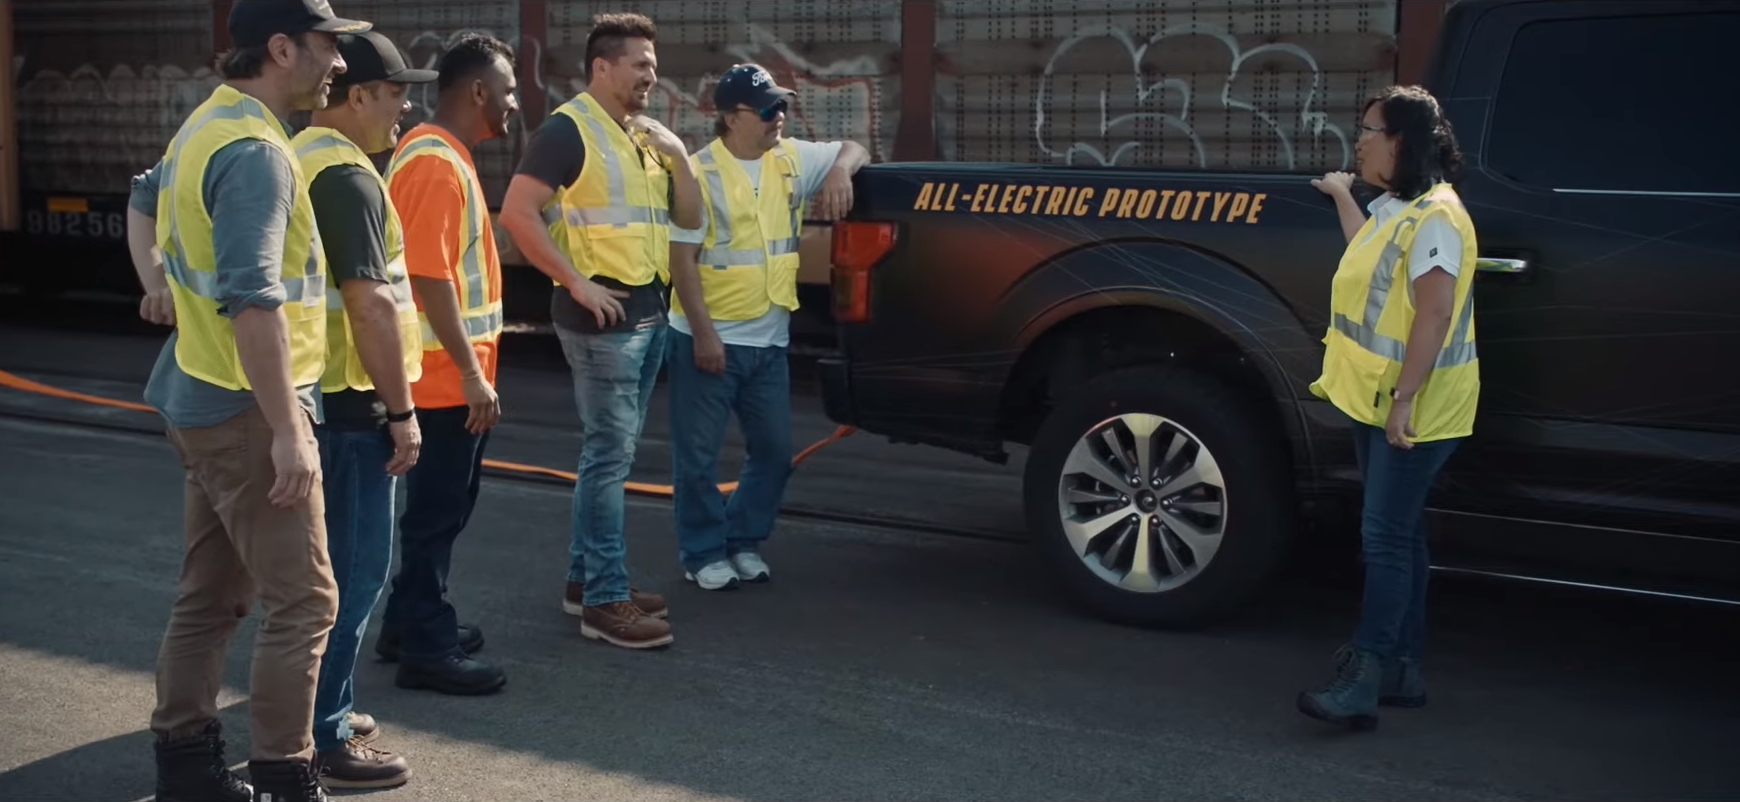 Ford unveiled its electric F-150 prototype in a commercial released in July. (Ford/YouTube)